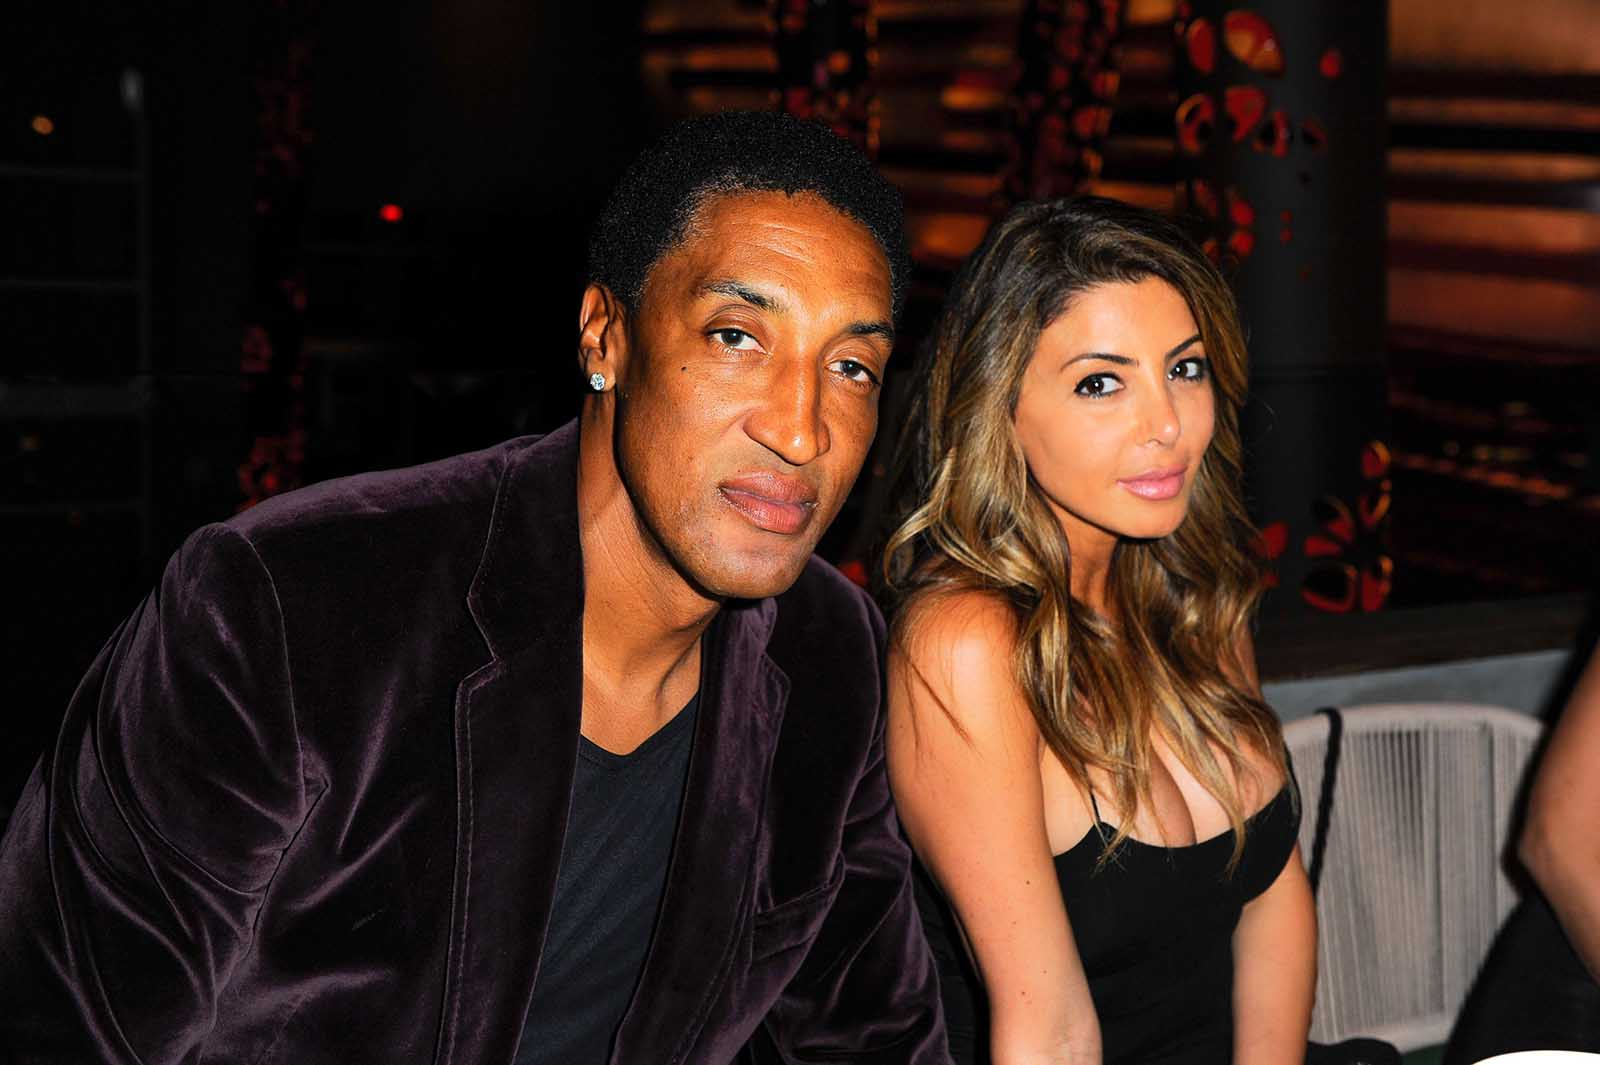 With the Kardashian and Larsa Pippen drama not coming to an end anytime soon, it's time to pick sides. Here's why we're team Larsa anyday.